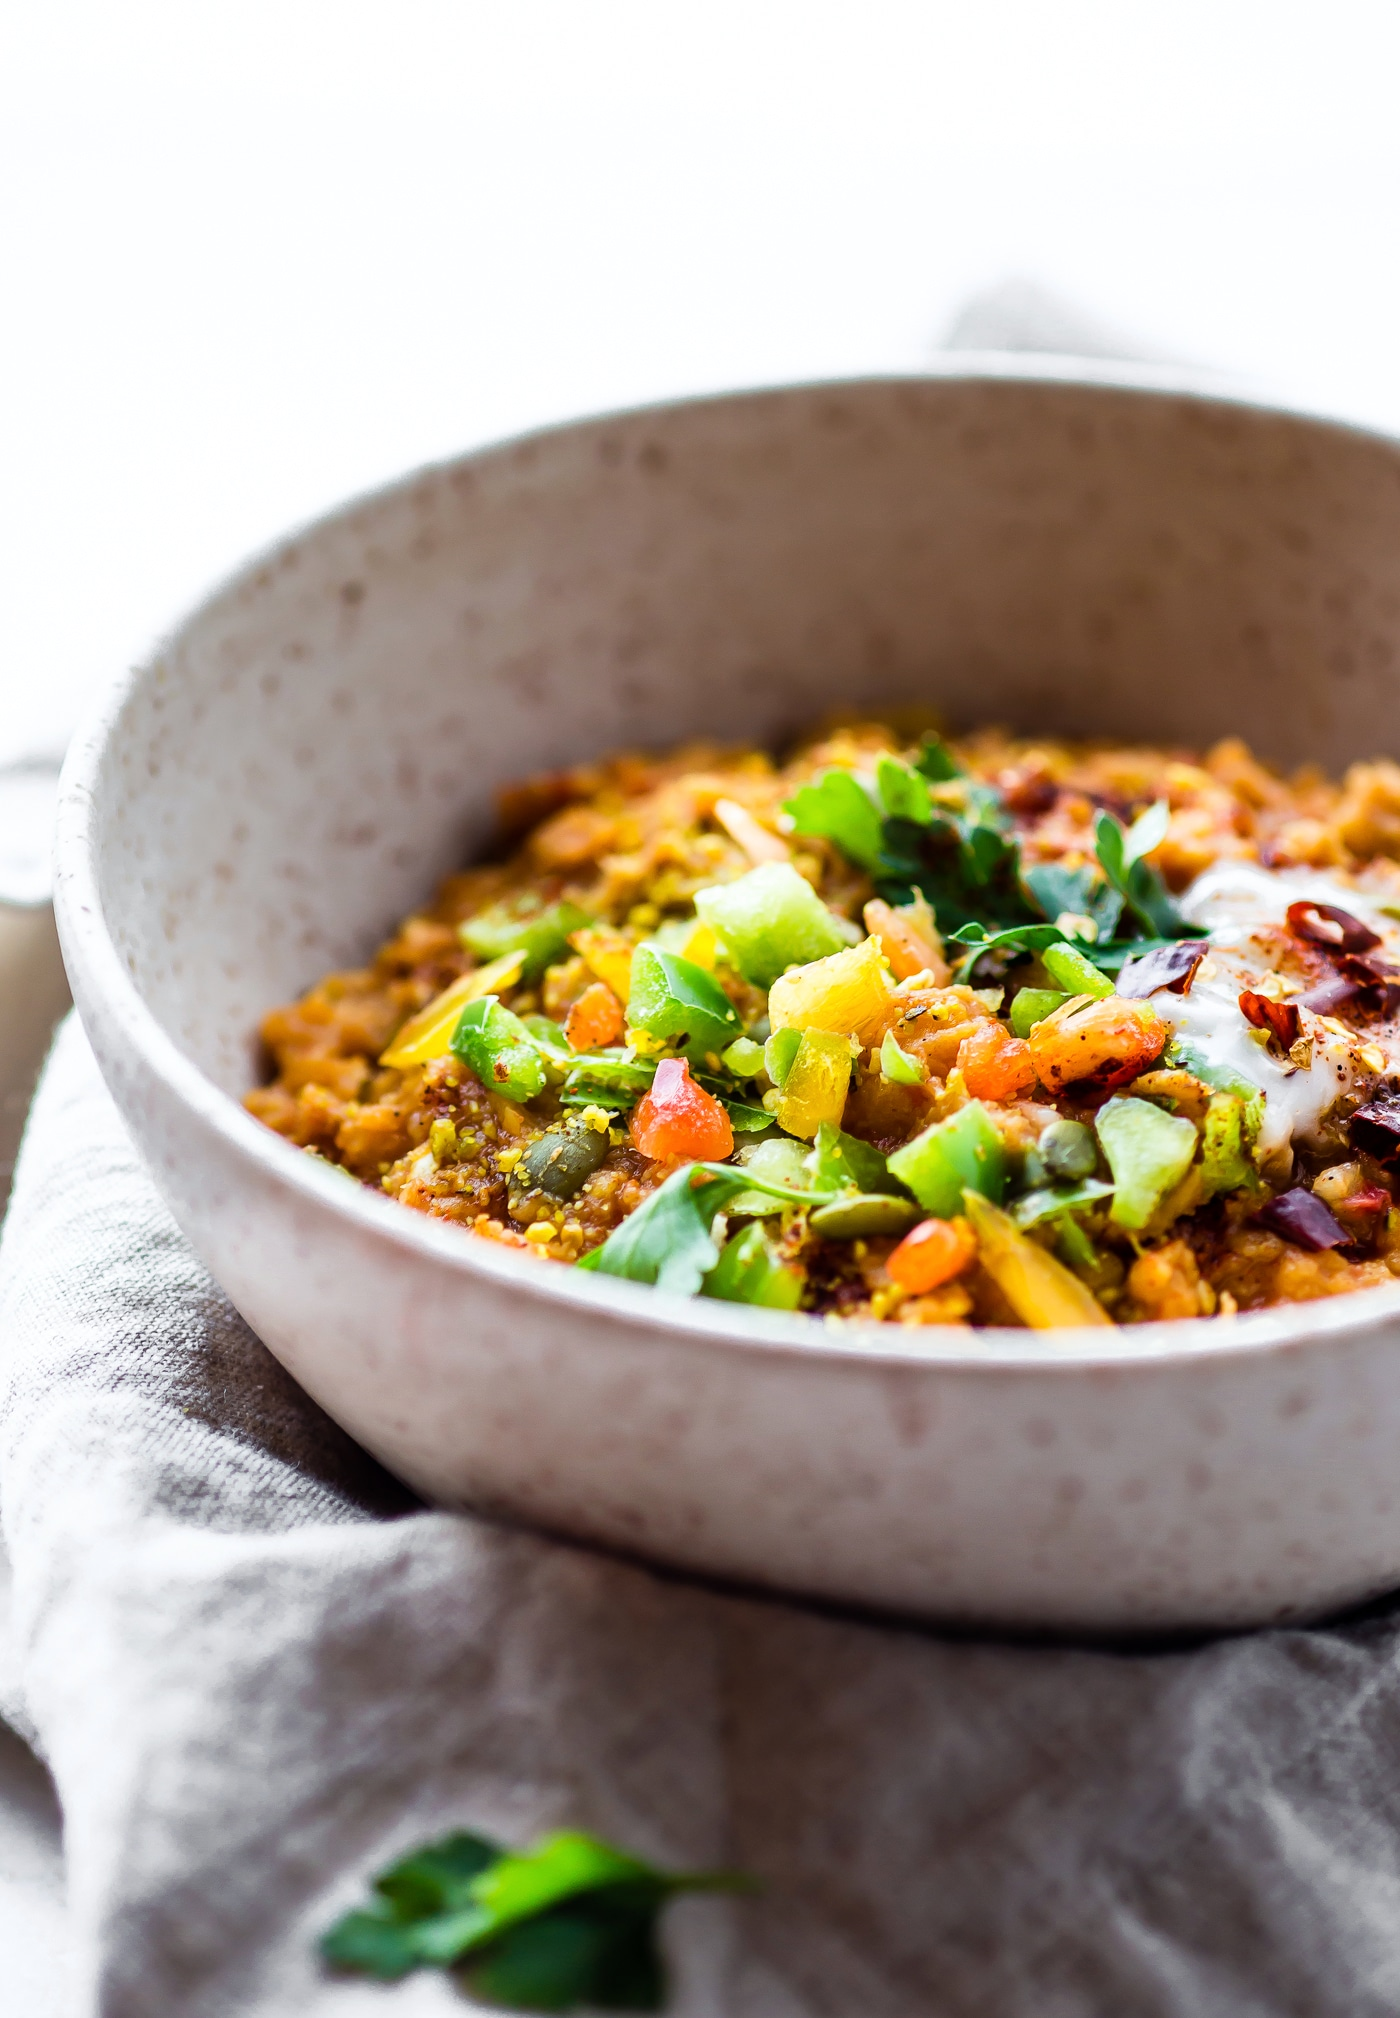 A hearty yet healthy BBQ Vegan lentil chili made with a few simple ingredients. Just like a taste of Texas! BBQ spices, sauce, onions, vegetables, and lentils. Throw in the crockpot and go. A fiber and protein rich meal that will feed plenty. Gluten-free and Grain Free.